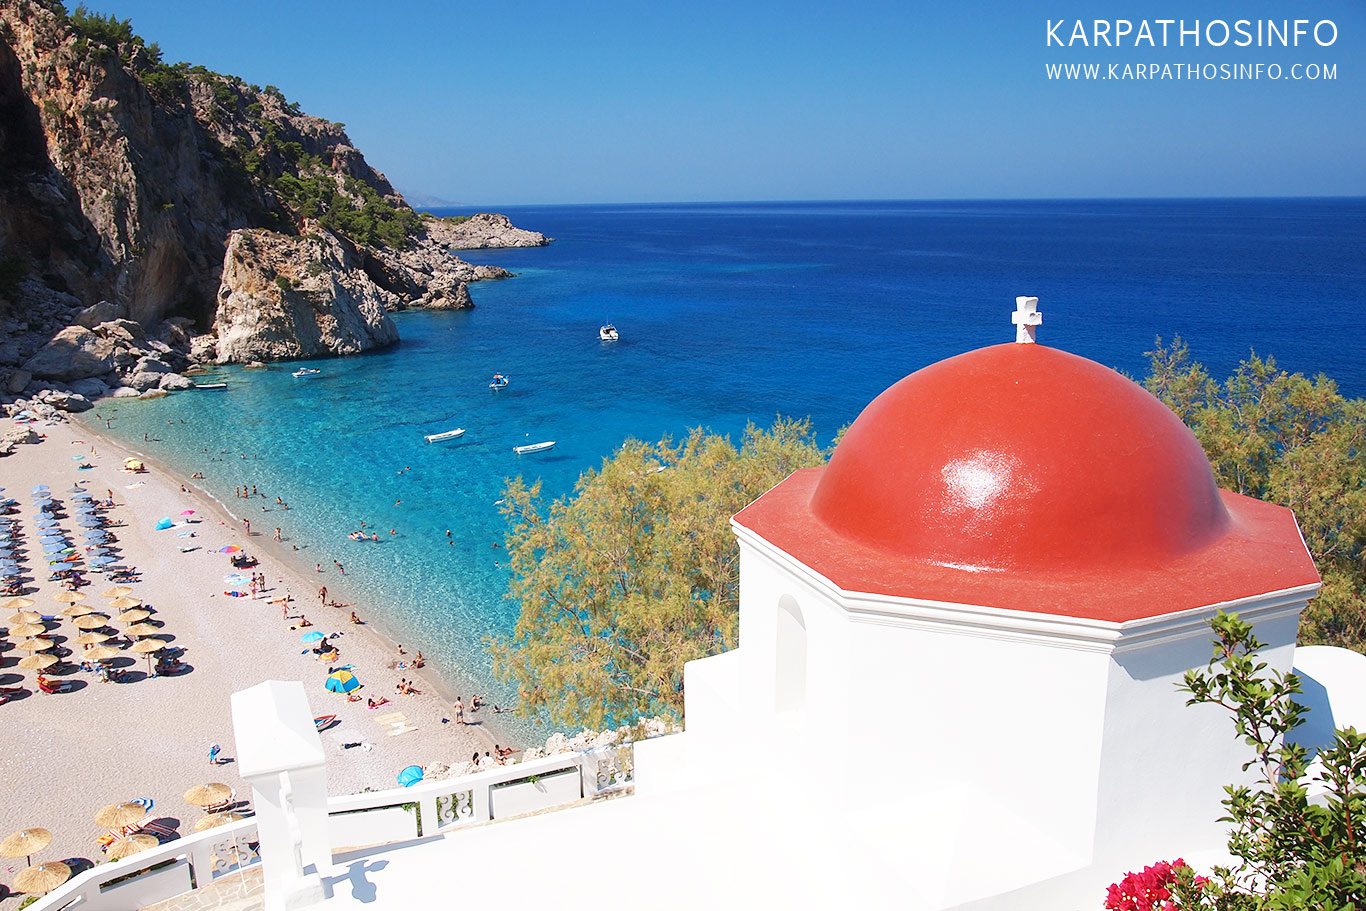 The best beaches in Karpathos - Kyra Panagia